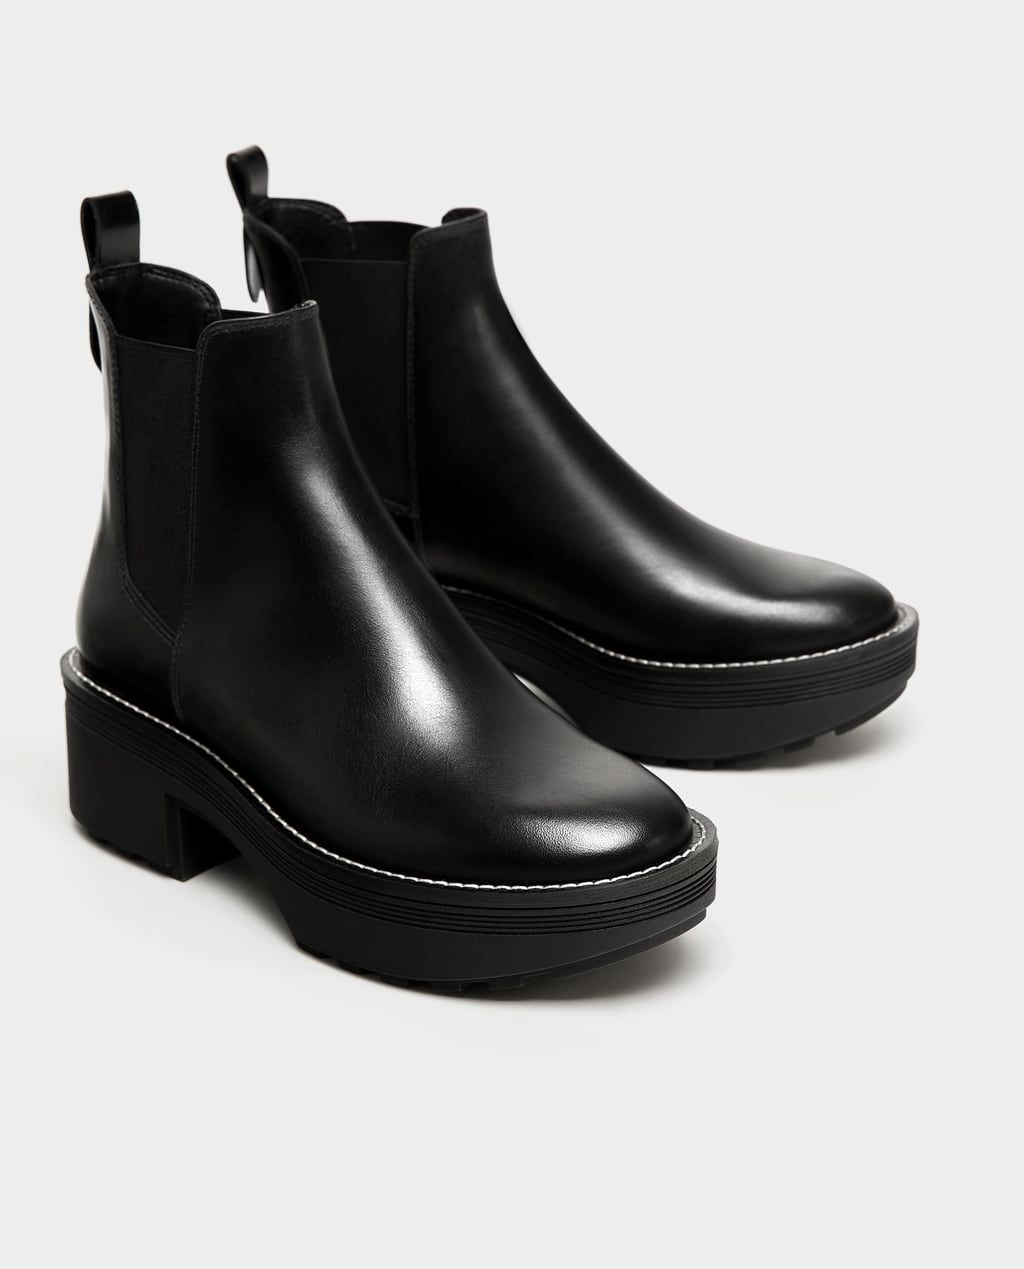 708214cdc21 FLAT LEATHER ANKLE BOOTS WITH TRACK SOLE-SHOES | ACCESSORIES-SALE-WOMAN |  ZARA United States